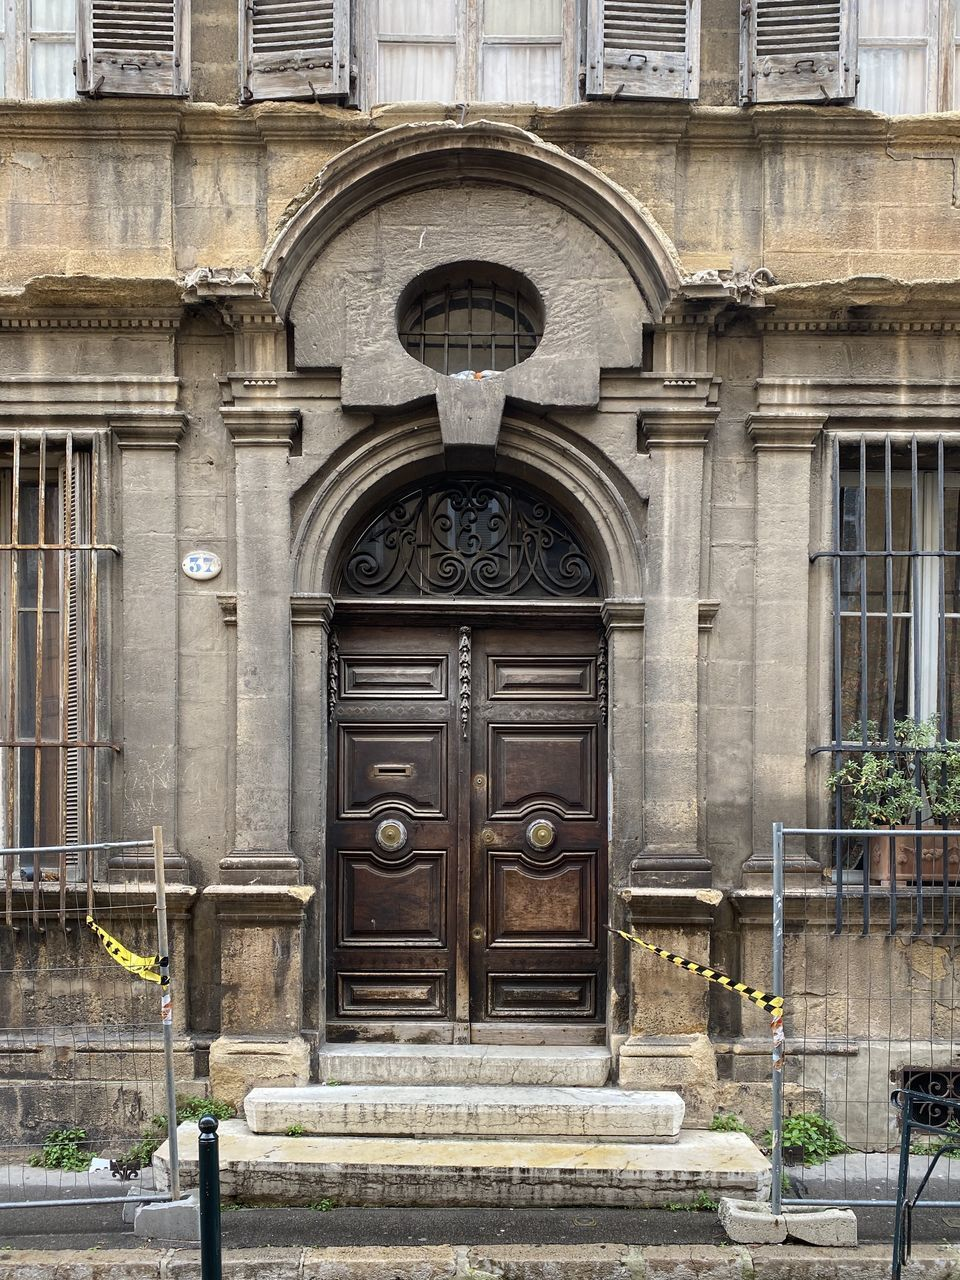 building exterior, architecture, built structure, entrance, door, closed, no people, day, building, history, the past, arch, security, city, protection, outdoors, old, safety, facade, residential district, ornate, carving